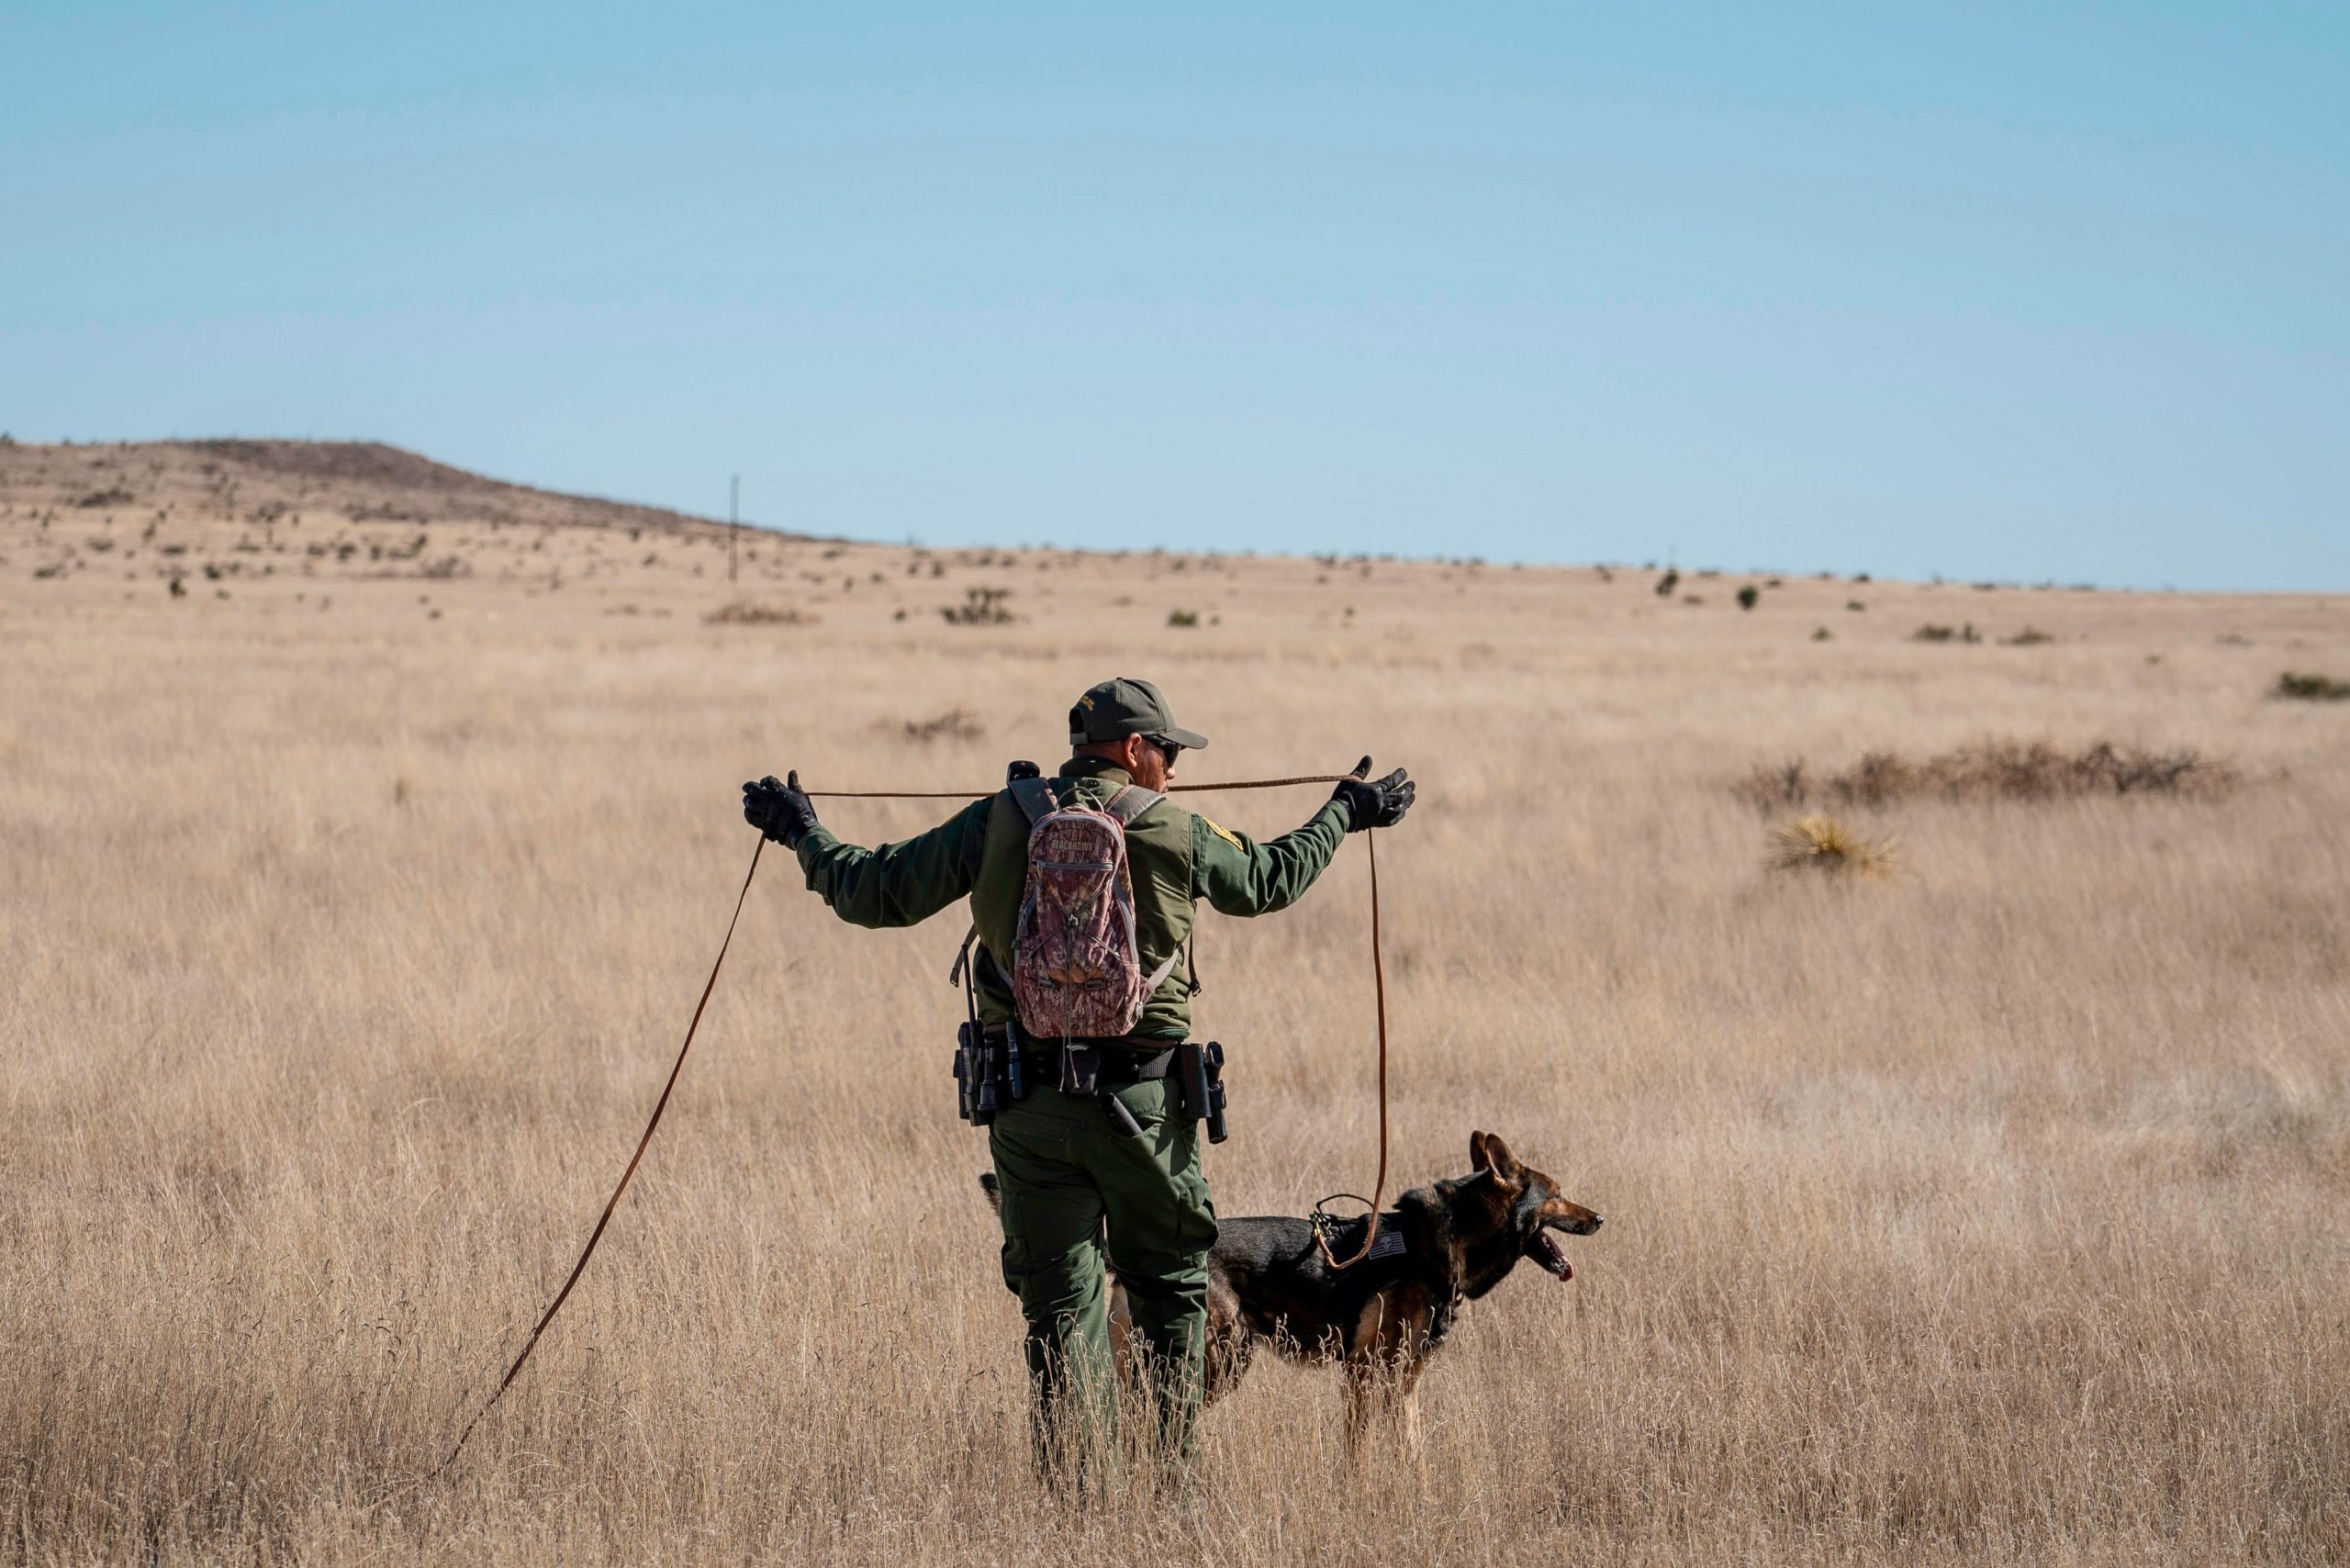 Canine Handler Agent Jose Solis, looks for the trail of suspects with his dog Max, a Belgian Malinois, Marfa, Texas on January 29, 2020. - Agents in the Big Bend Border Patrol Sector employ tracking techniques and spend a lot of time on foot and on horseback to pursue smugglers, and drug or human traffickers through the remote terrain of West Texas. (Photo by Paul Ratje / AFP) (Photo by PAUL RATJE/AFP via Getty Images)